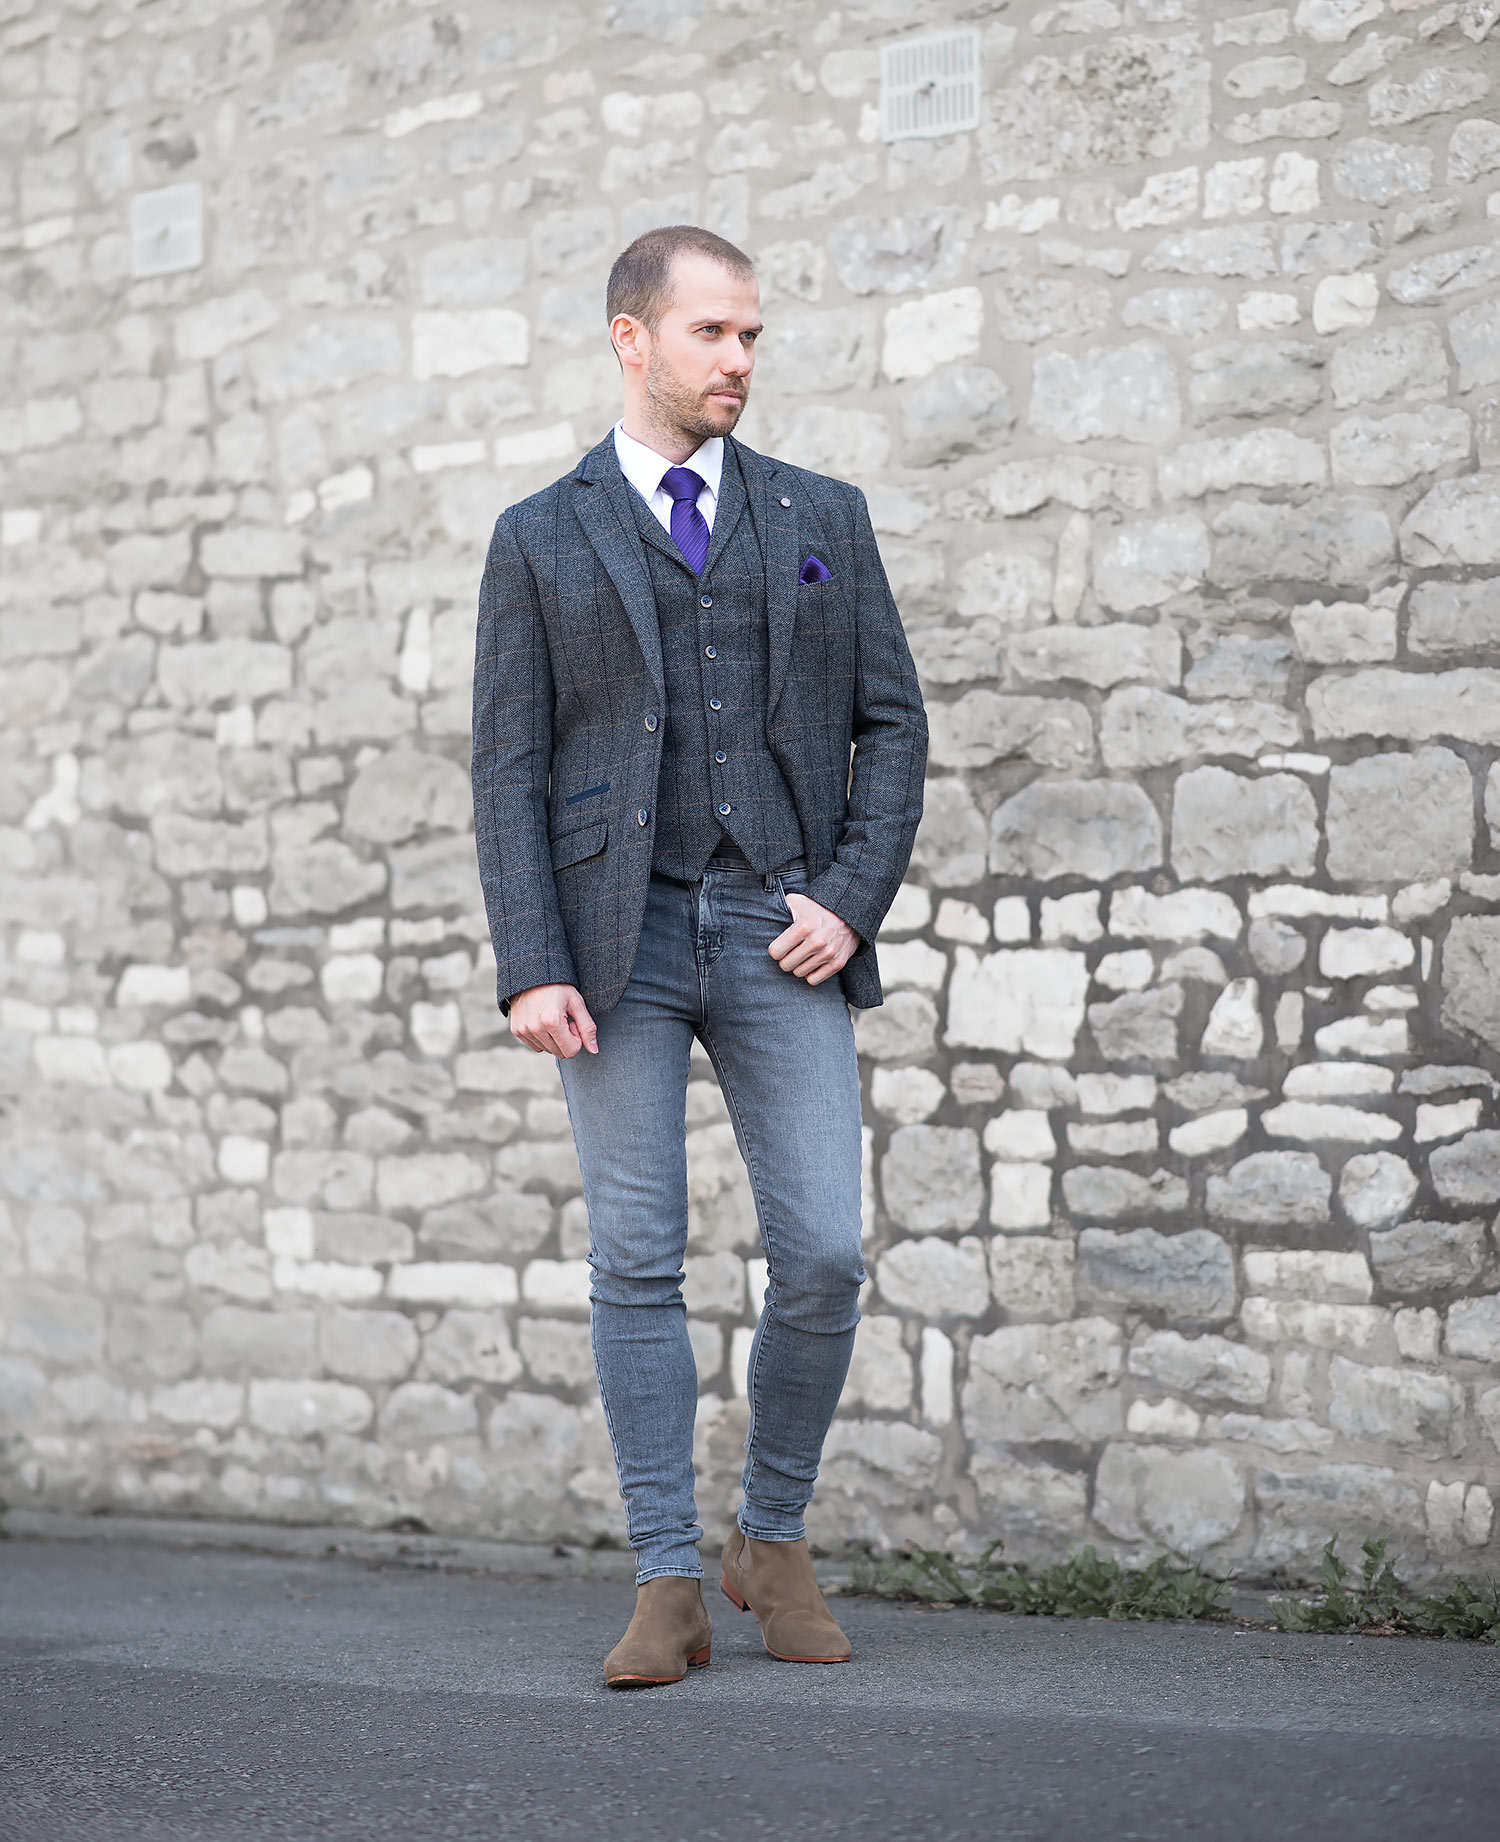 bc3f33672c9 Tweed Suit With J Brand Skinny Jeans Outfit   Your Average Guy